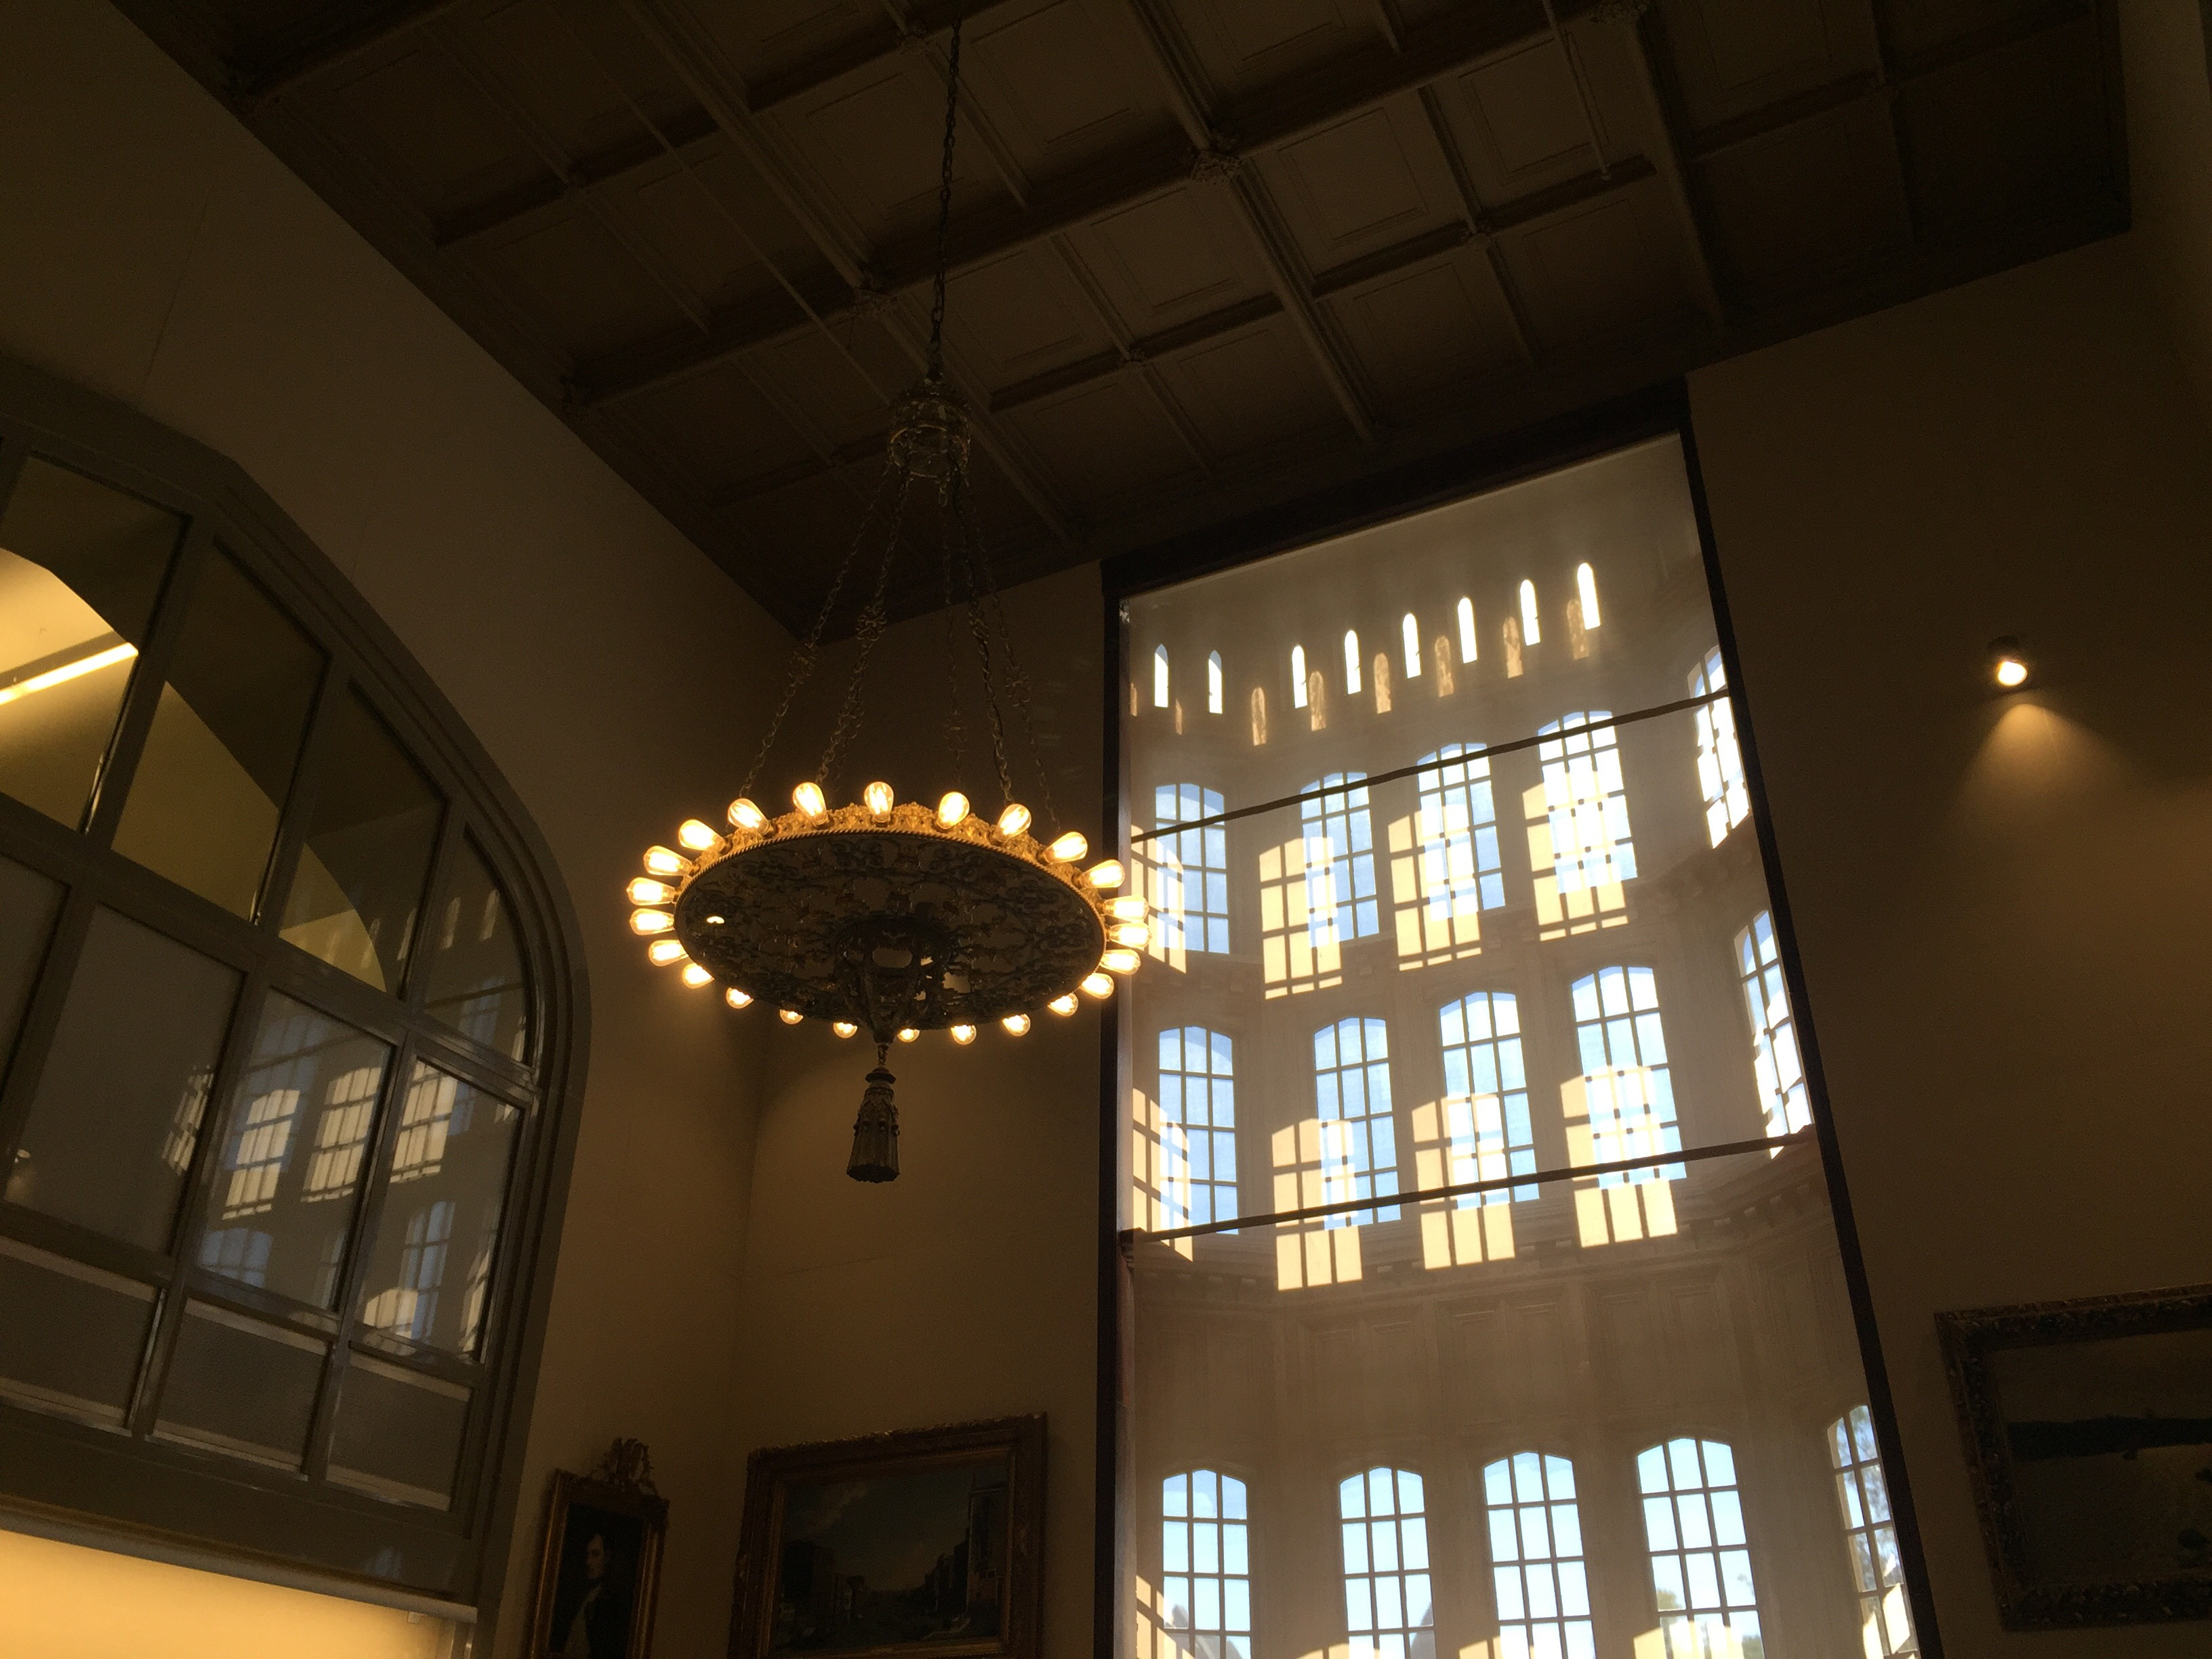 Lighting fixture, Leon Levy Dental Medicine Library.